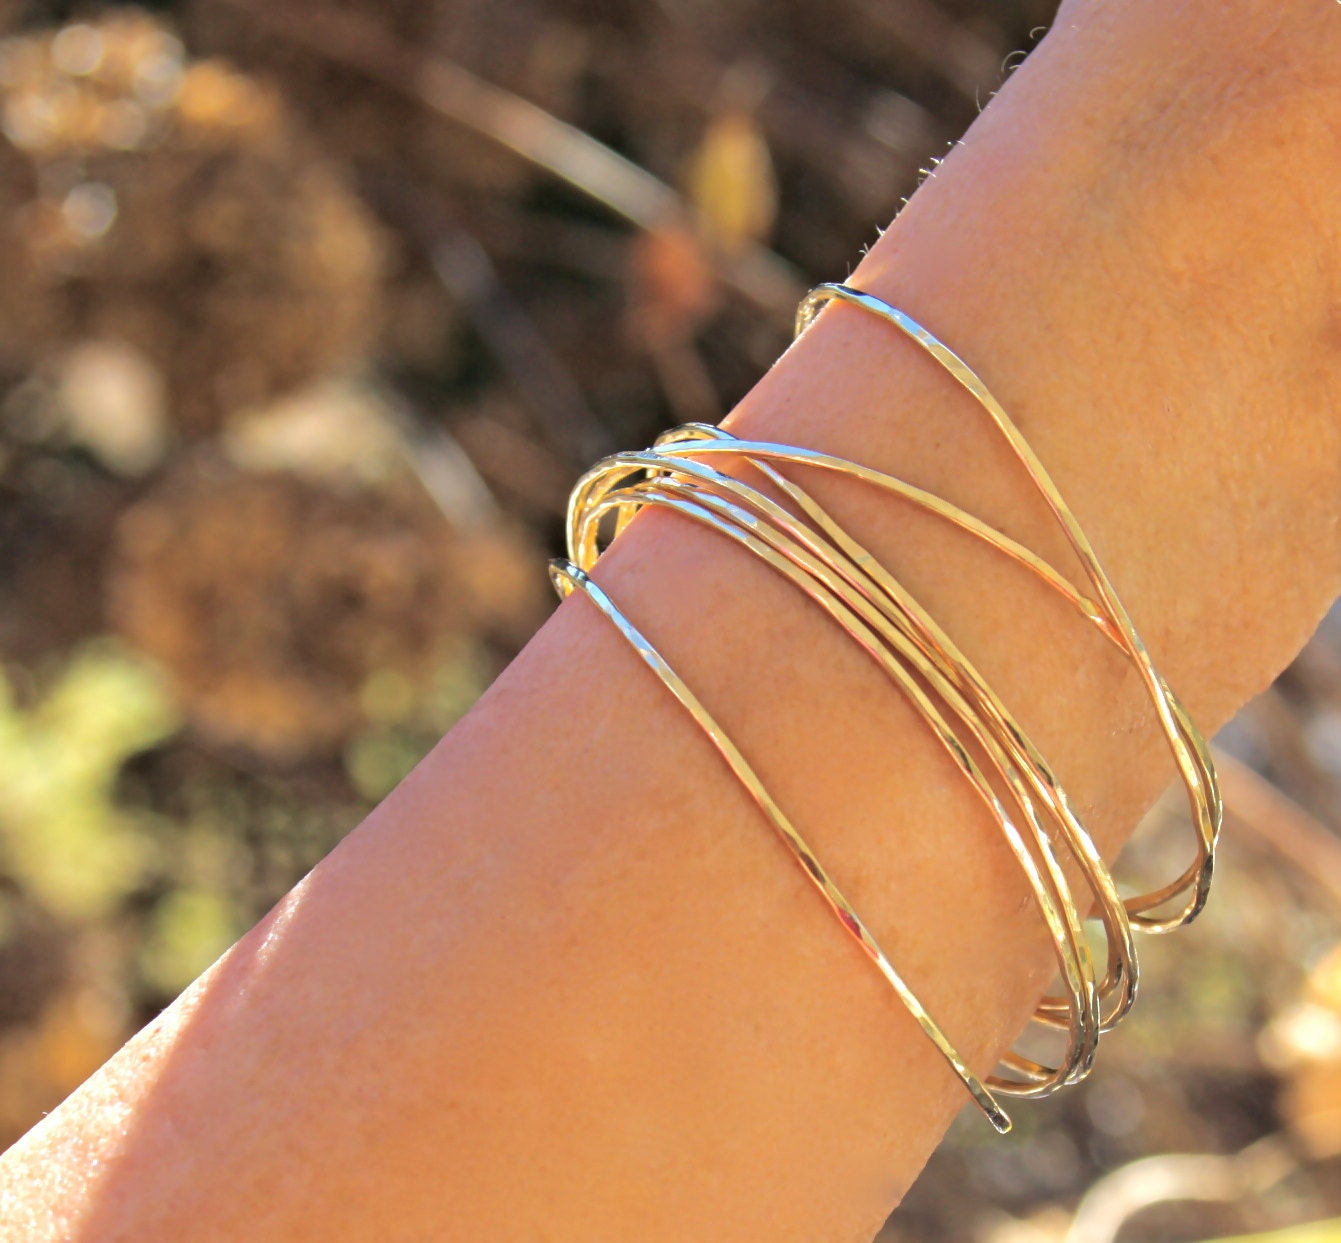 tang the bangles hive bracelet rosegold rose double wave christian search sterling gold slim daniel bangle